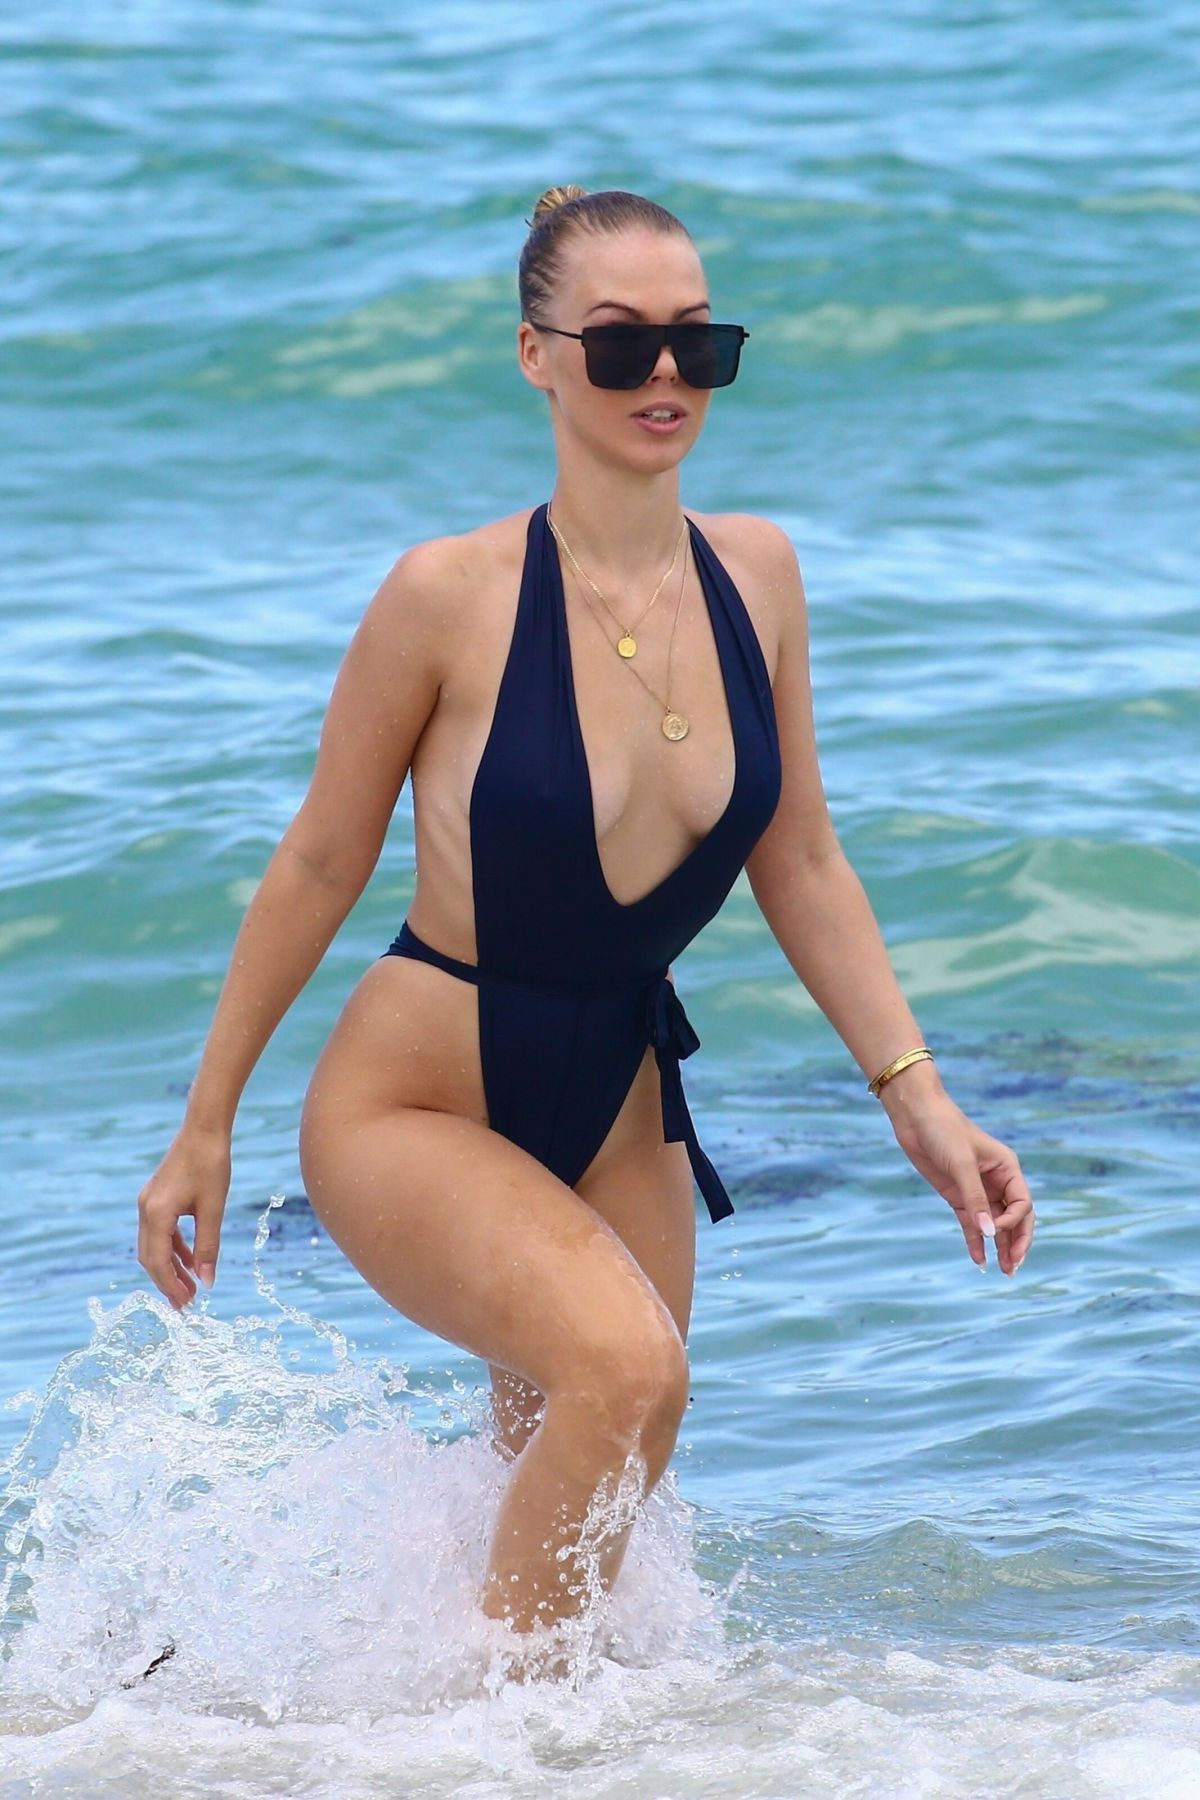 Bianca Elouise At the beach wearing a thong one-piece in Miami